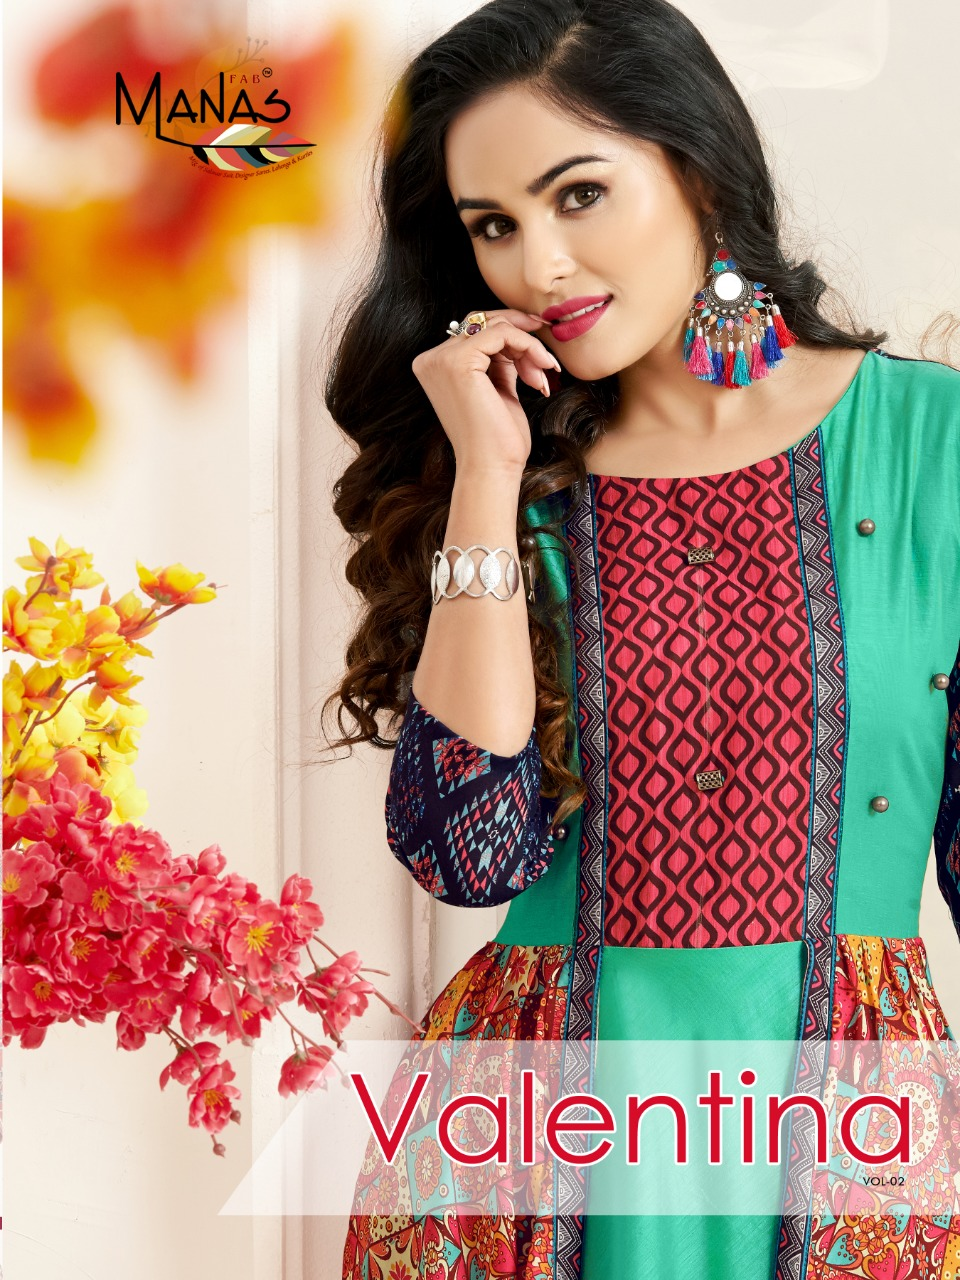 Manas Valentina vol 2 premium collection of colorful Indo Western gowns